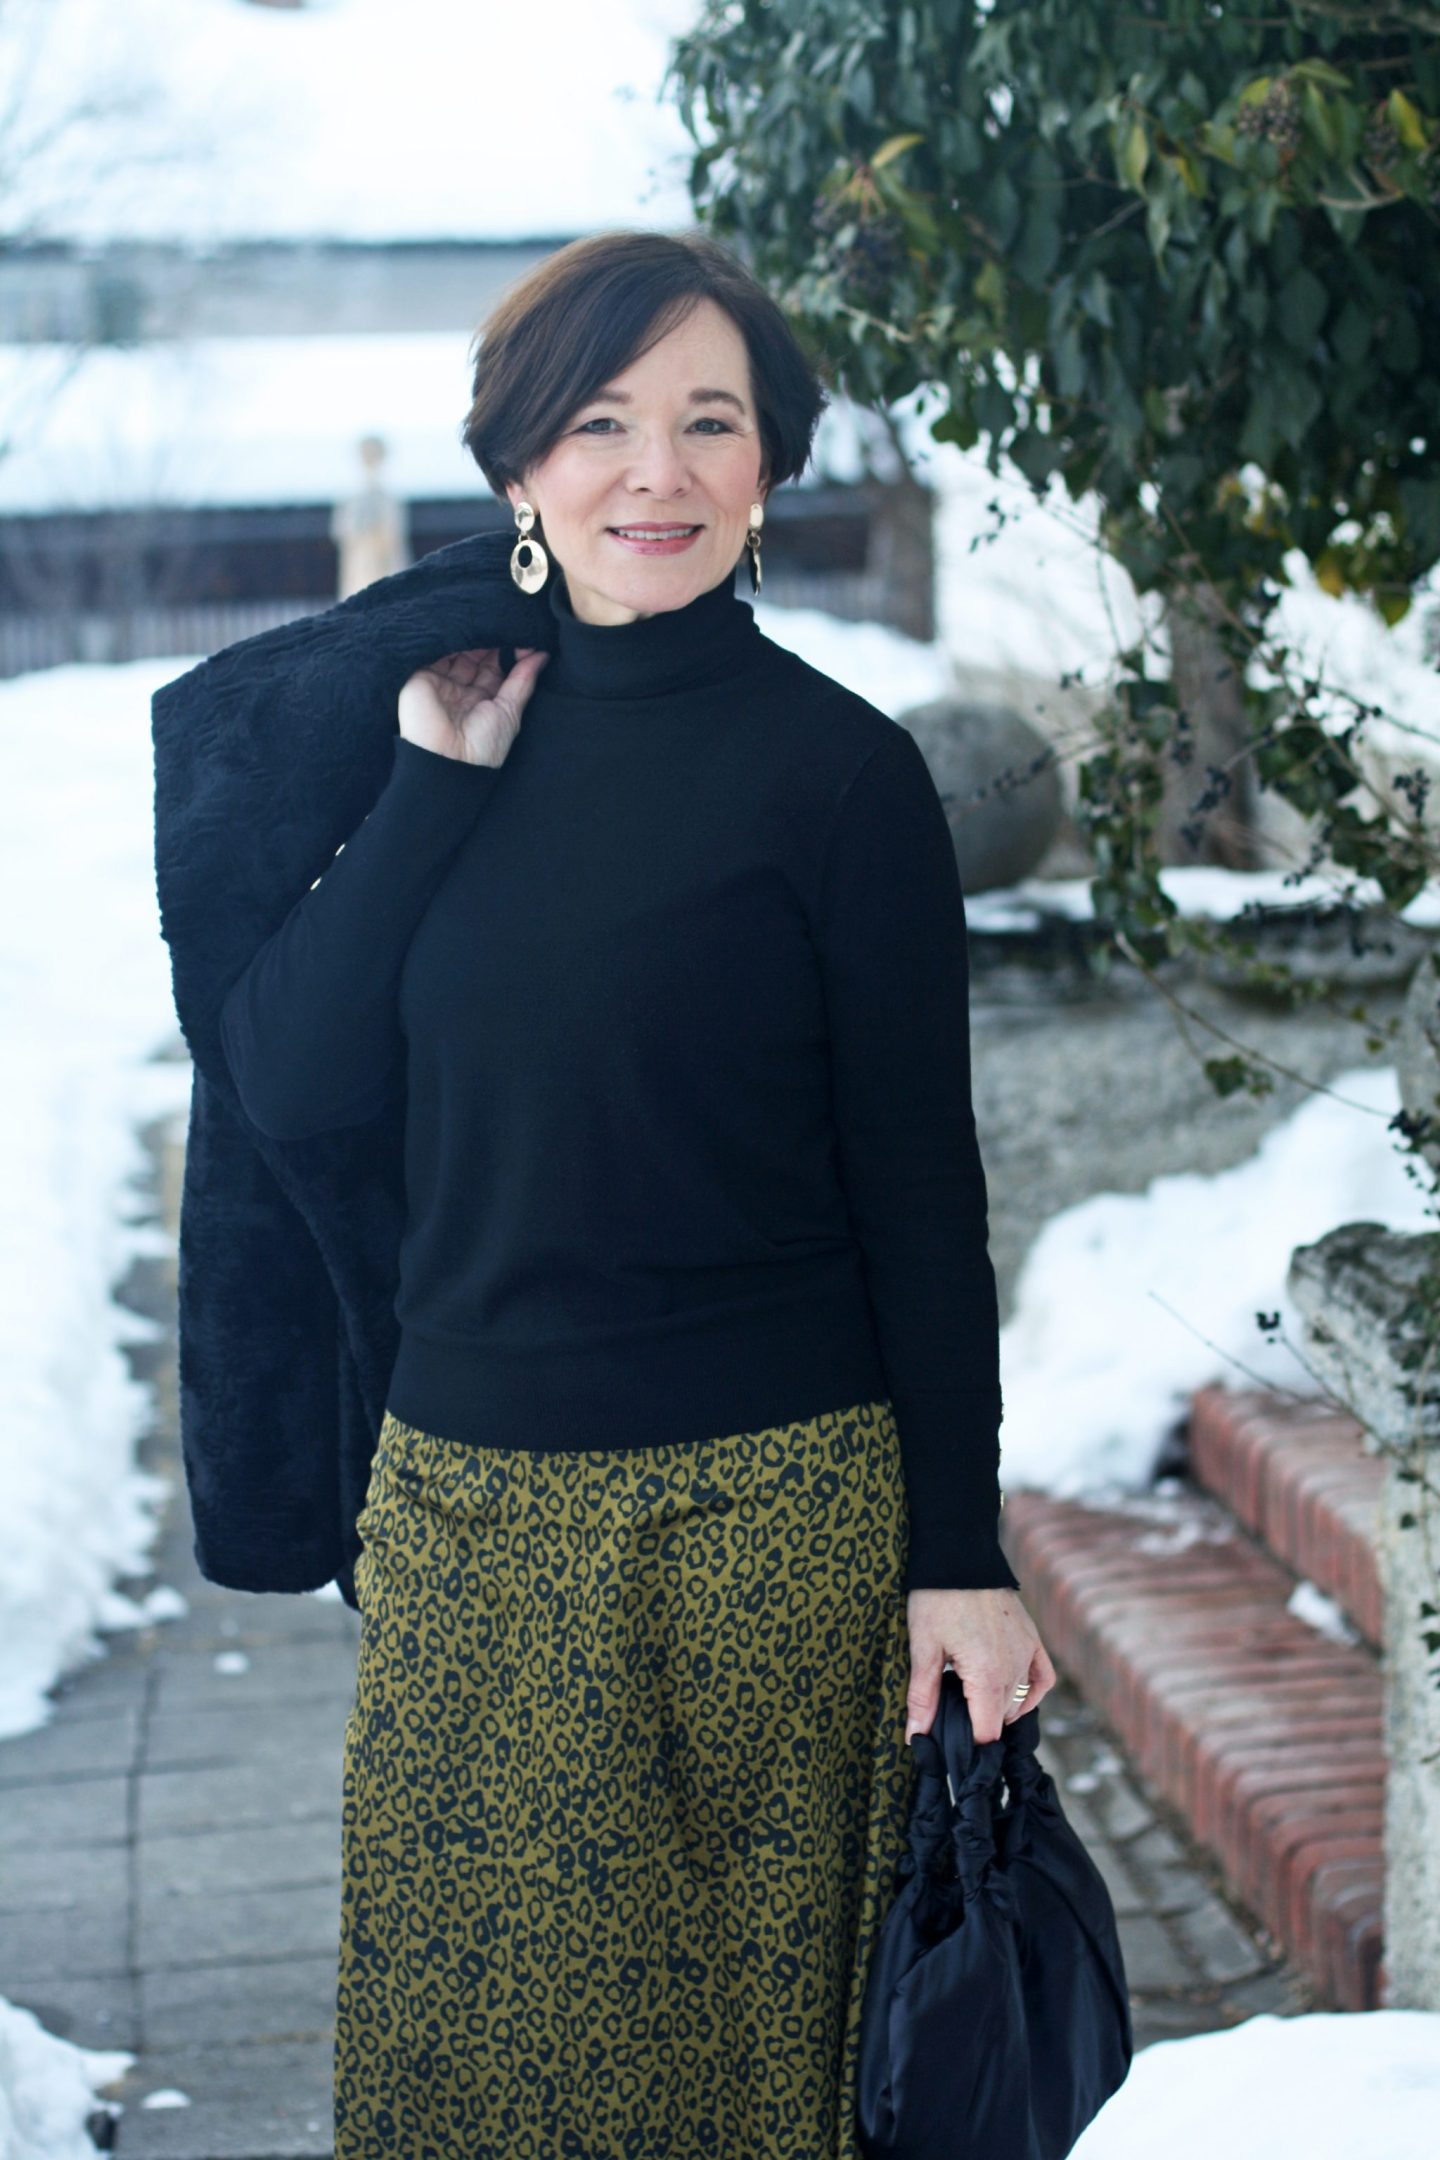 Leo Rock Animalprints Kunstpelz Winterlook 50plus Blogger LadyofStyle